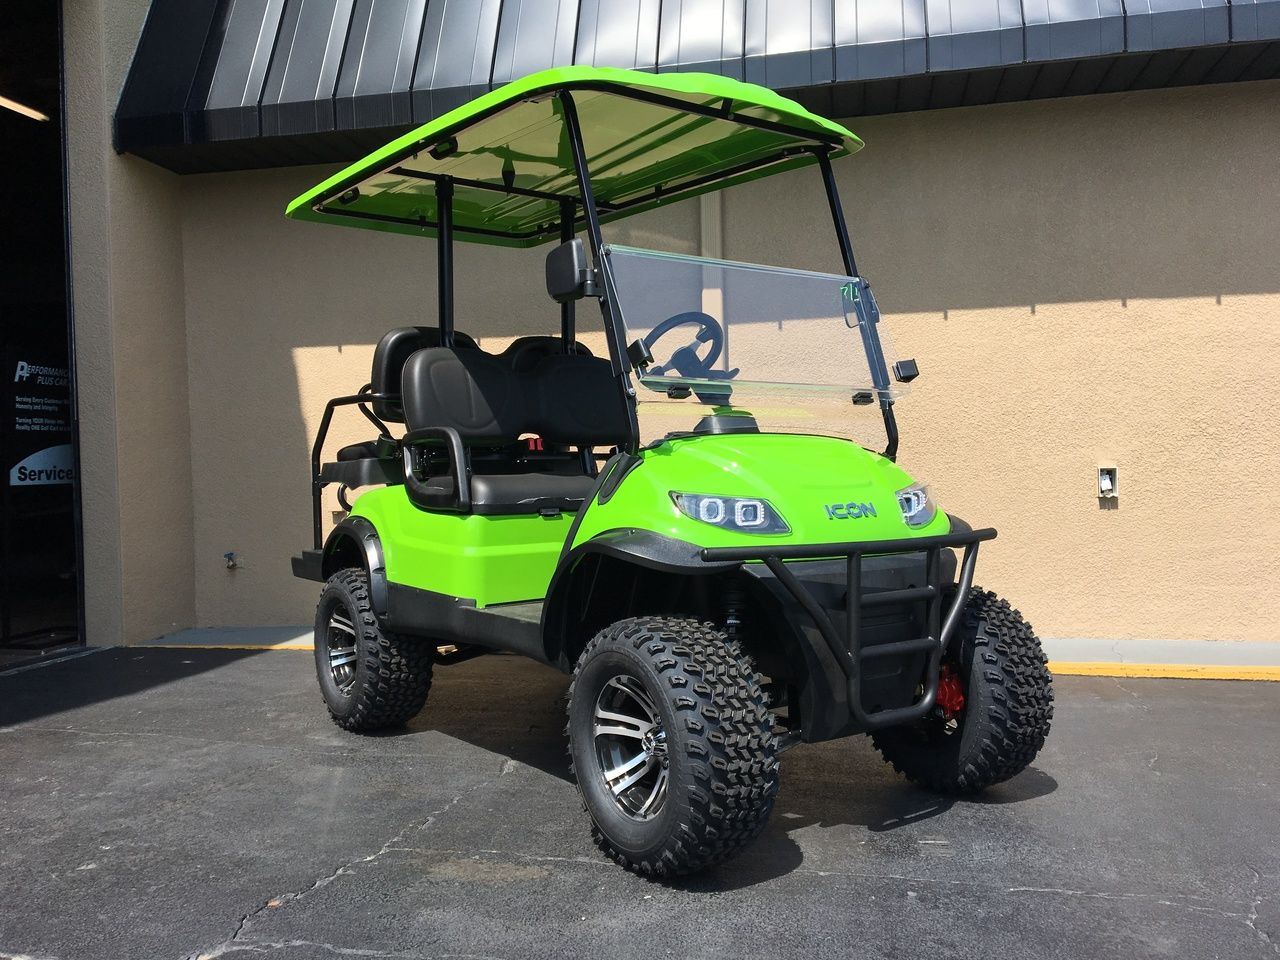 Icon I40l 4 Passenger Lifted Lime Green Golf Cart In 2020 Golf Carts Club Car Golf Cart Golf